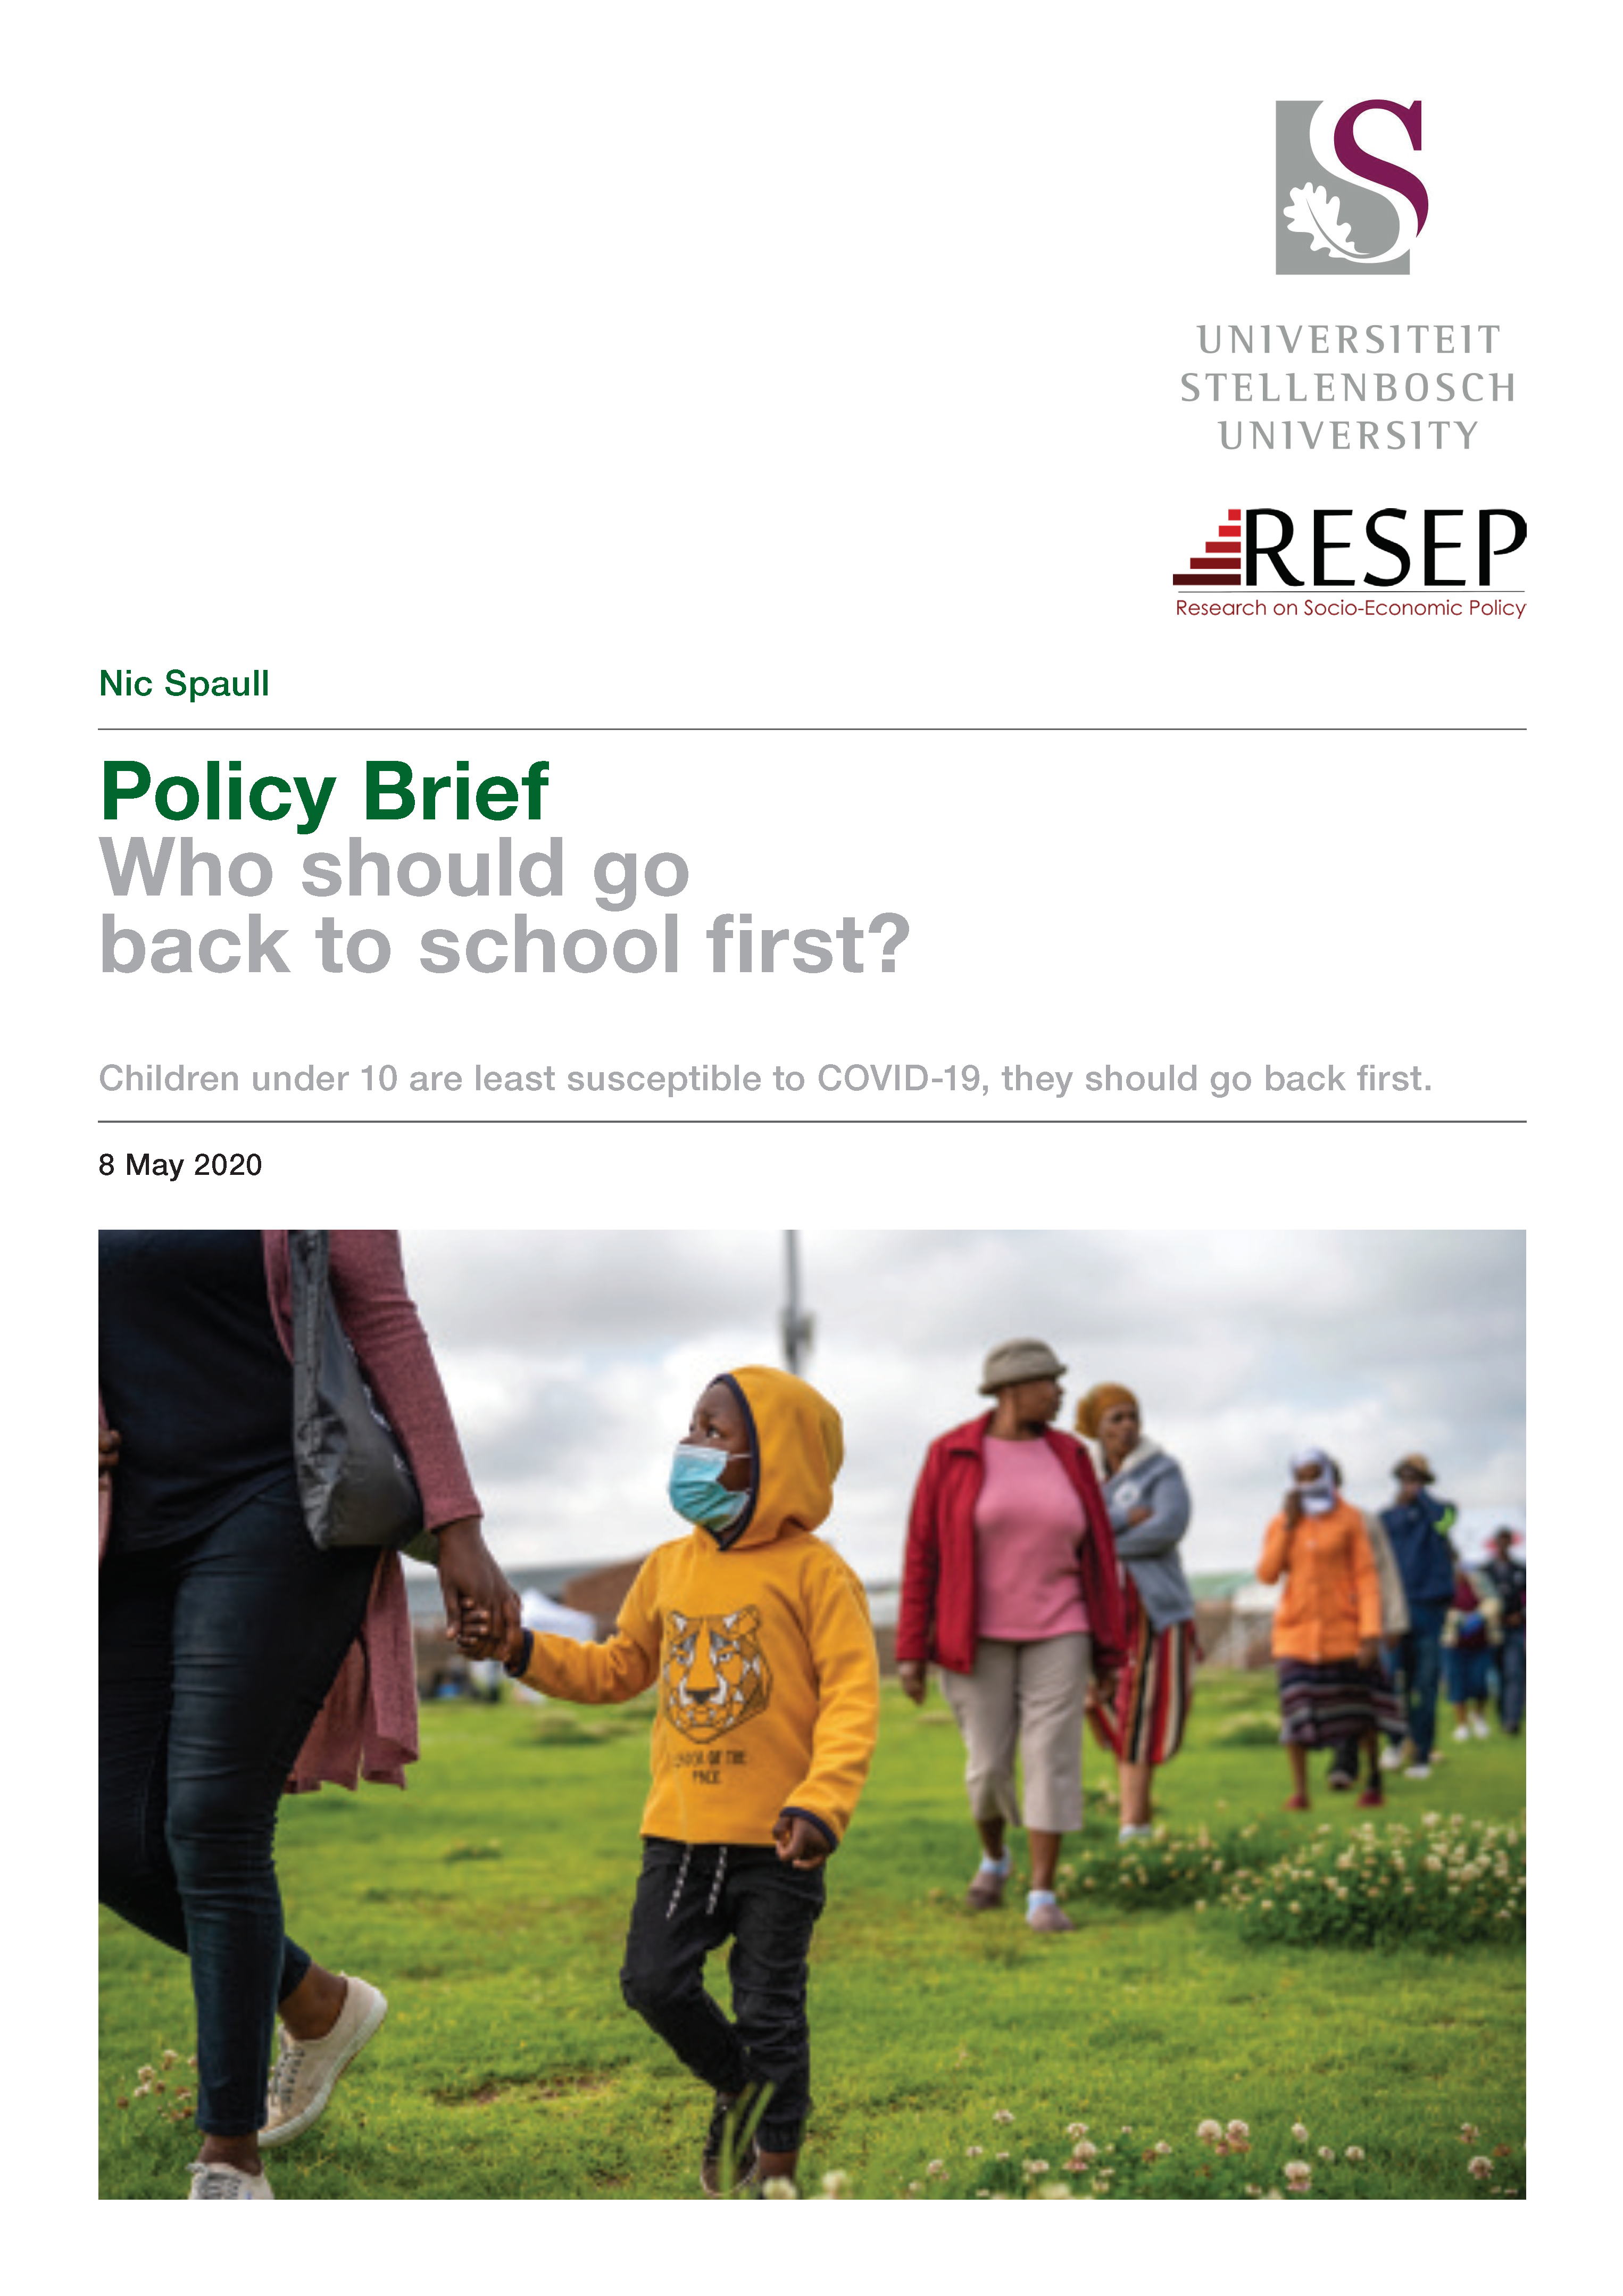 Spaull 2020 Schooling Policy Brief (10 May 2020) 1